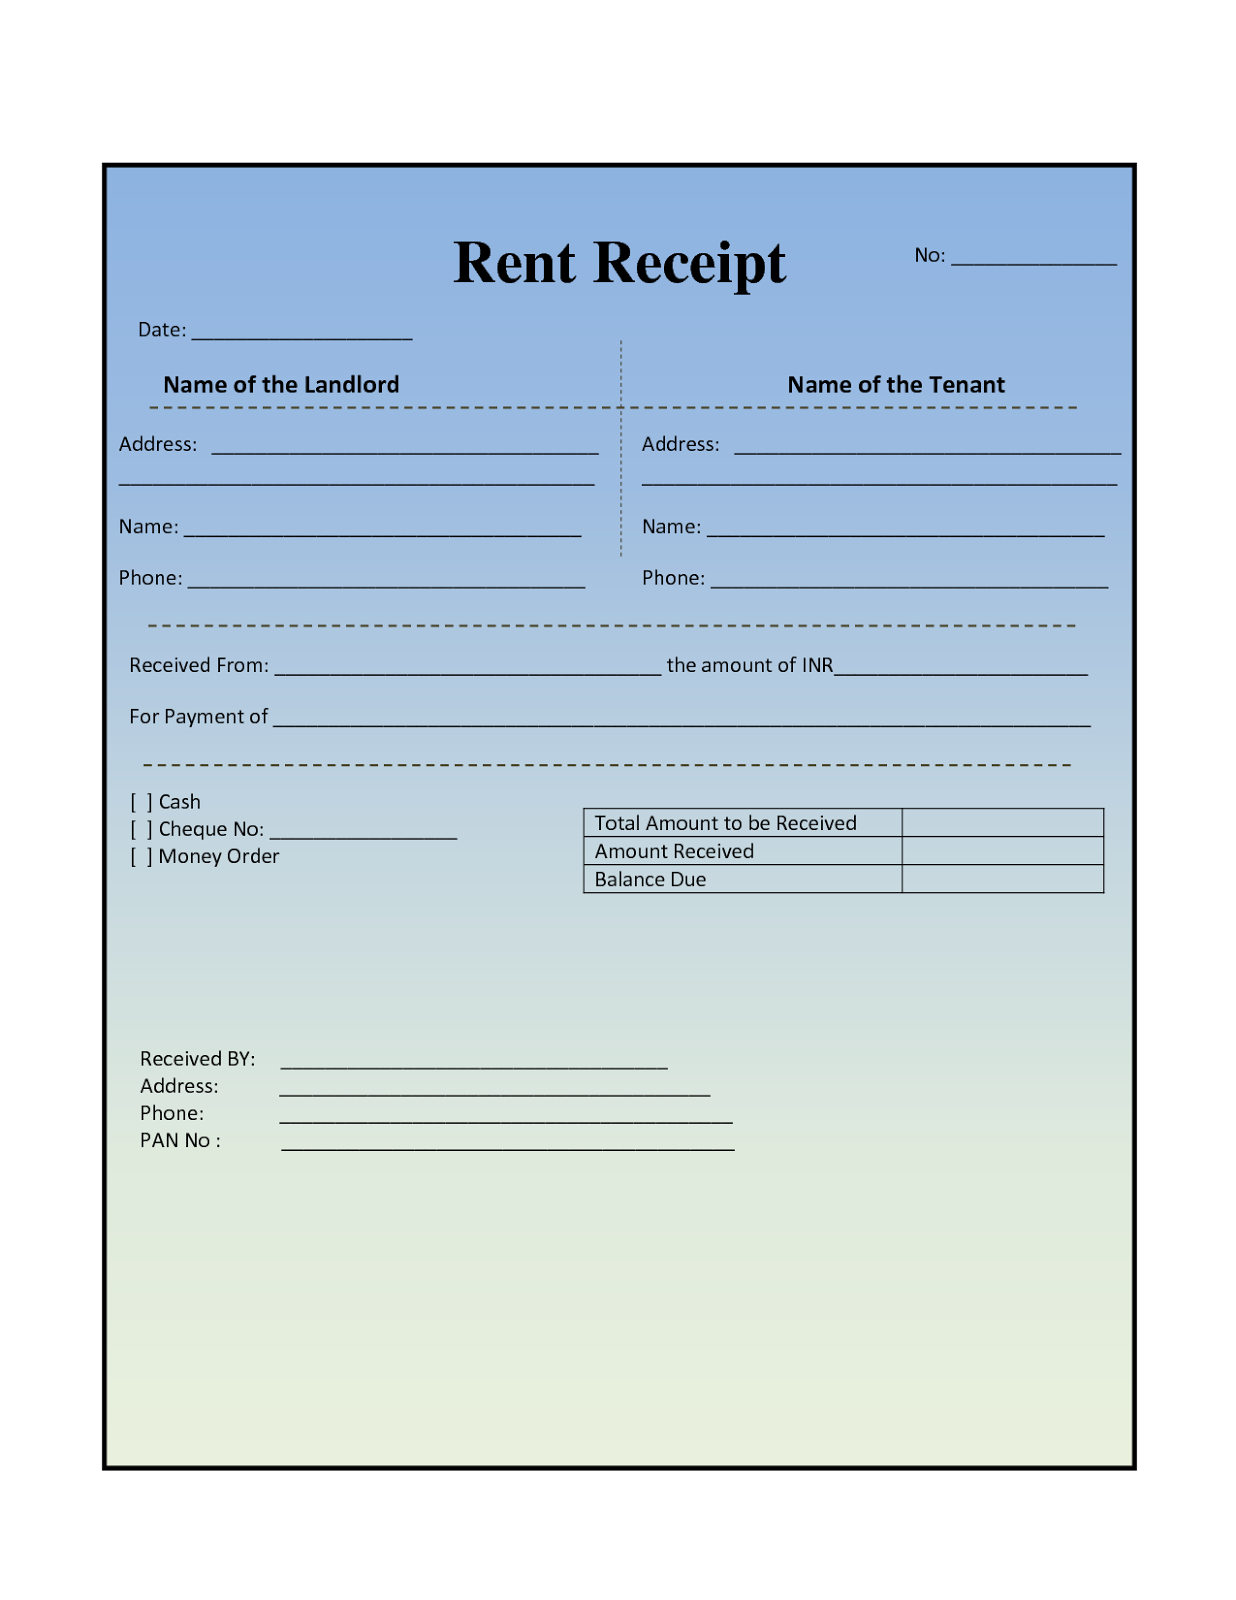 House Rental Invoice Template In Excel Format  Home Invoice